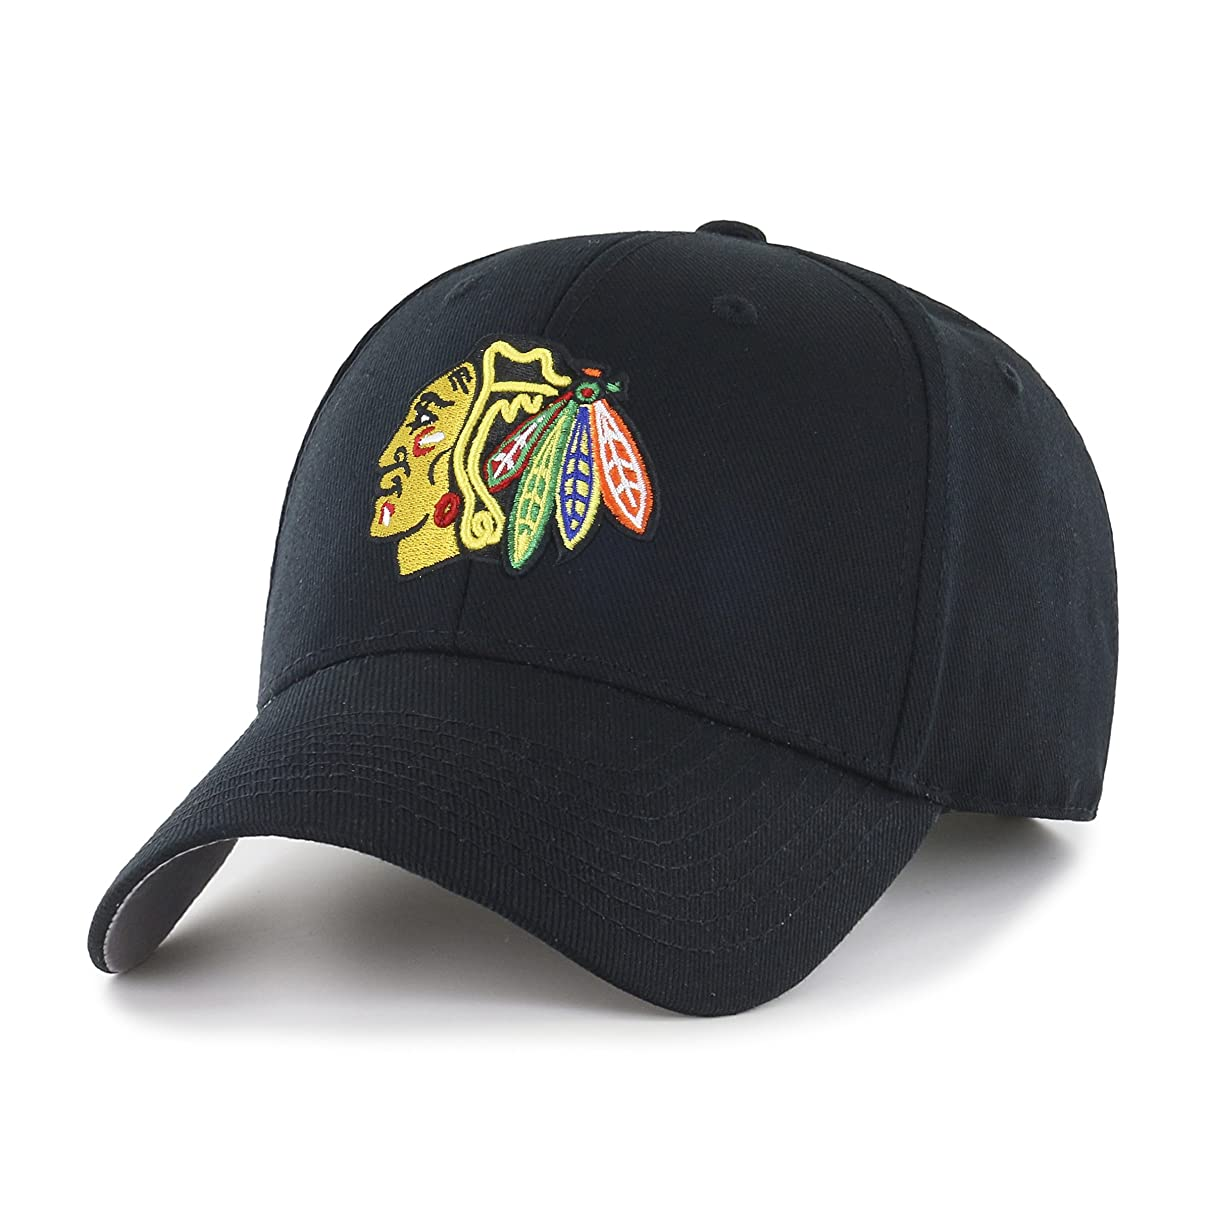 OTS NHL Adult Men's NHL All-Star Adjustable Hat